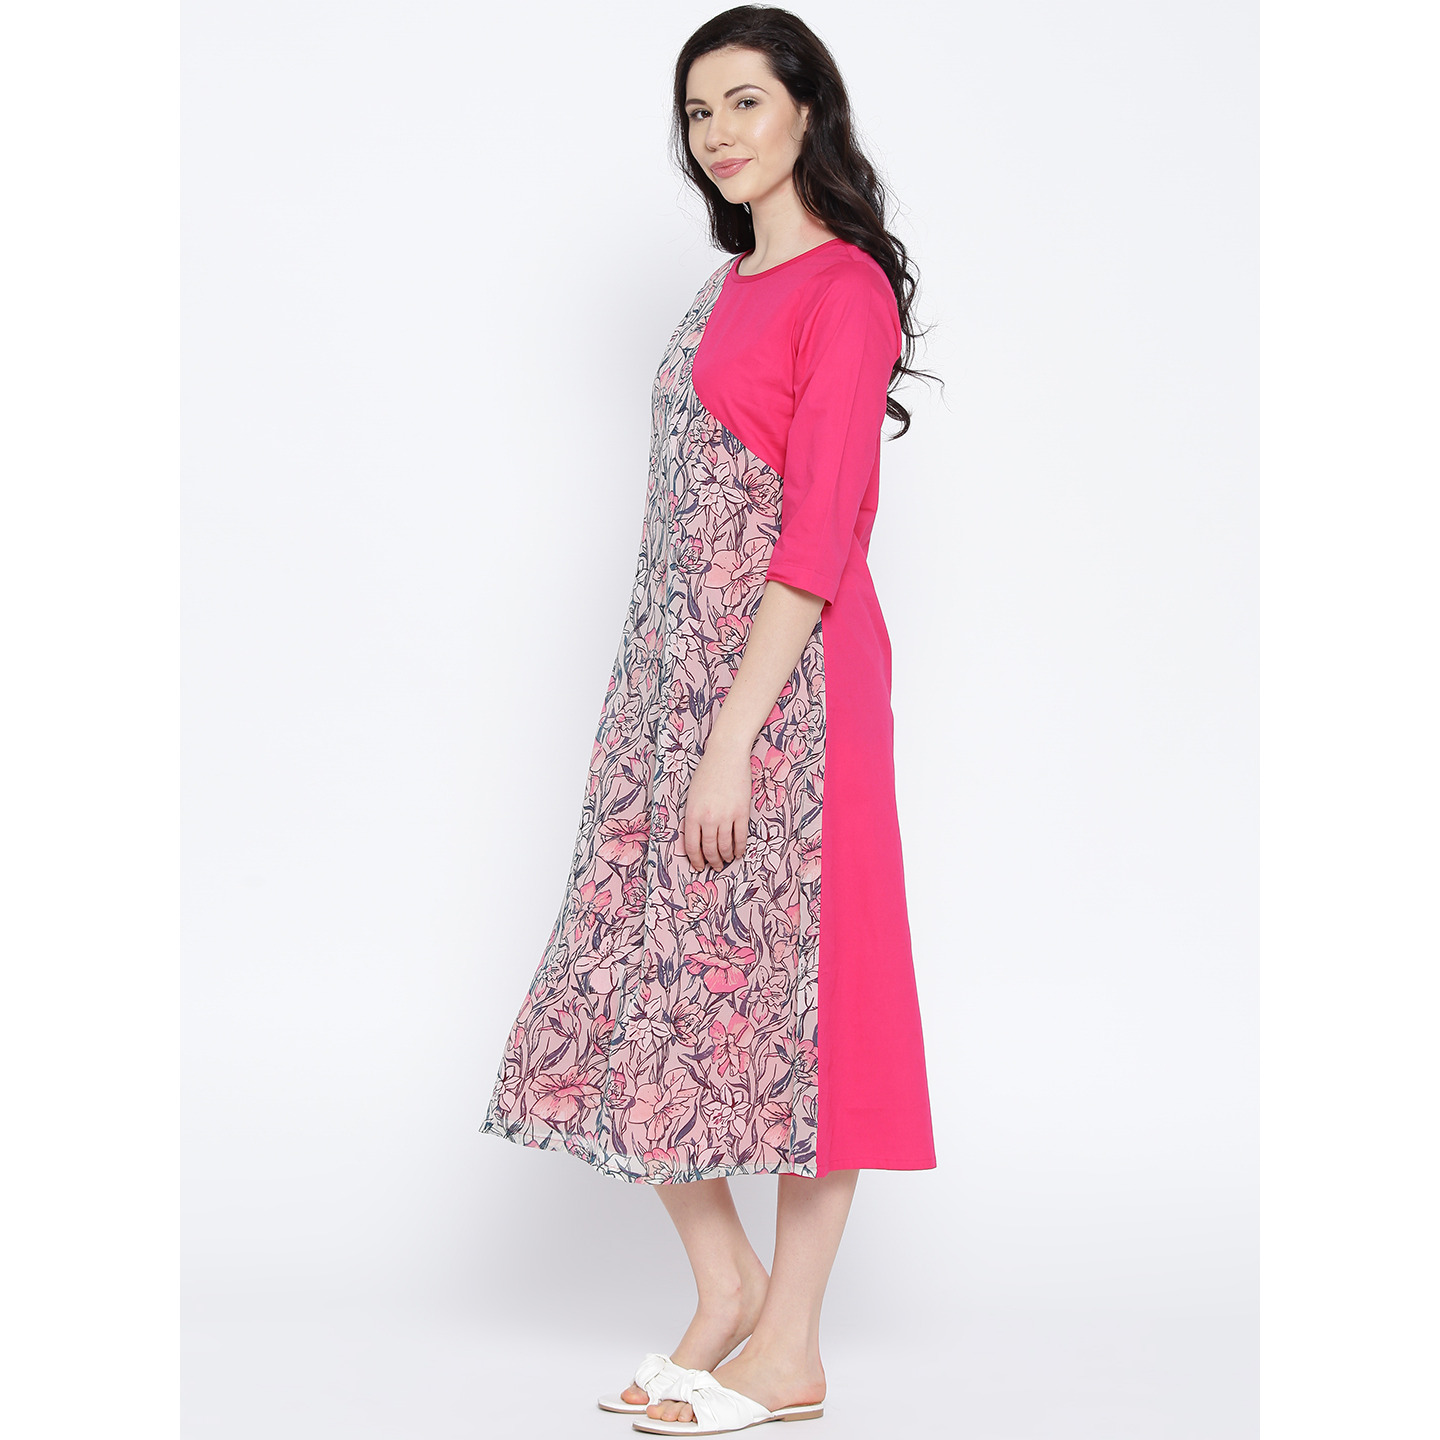 PinkPolyesterLong Floral Printed Dress For Womens